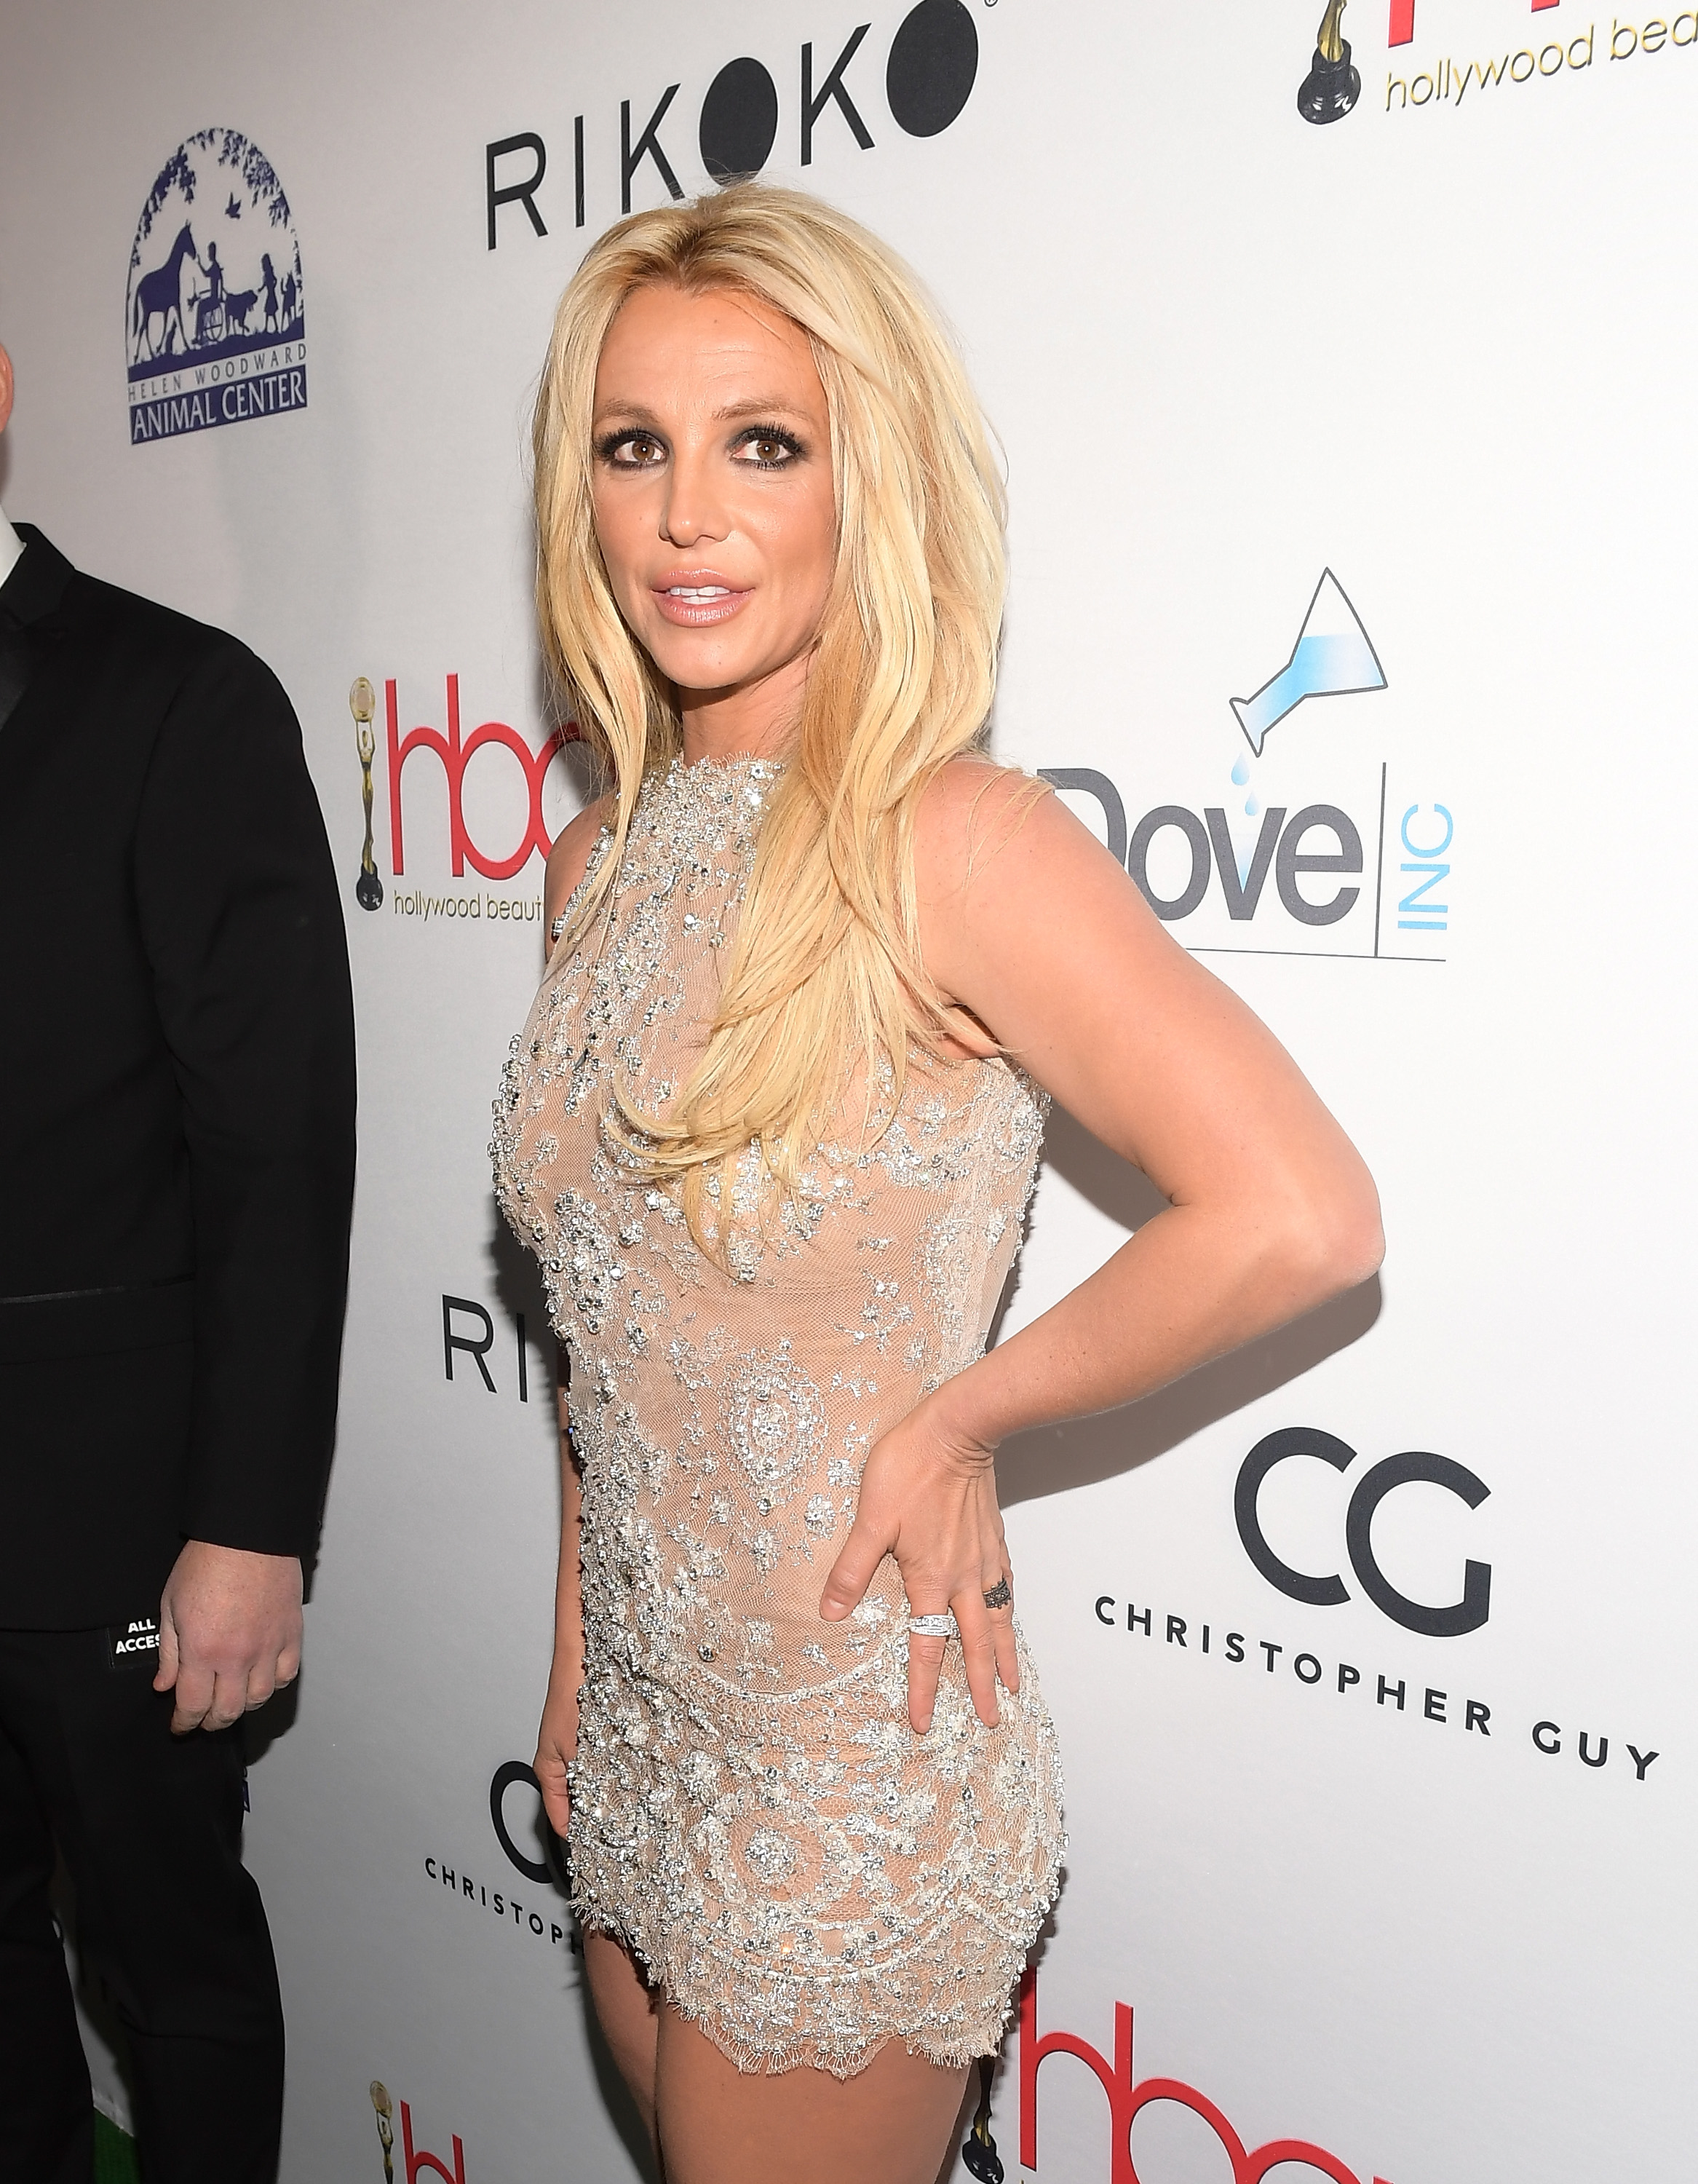 Britney Spears attends the 4th Hollywood Beauty Awards at Avalon Hollywood on February 25, 2018, in Los Angeles, California. (Getty Images)